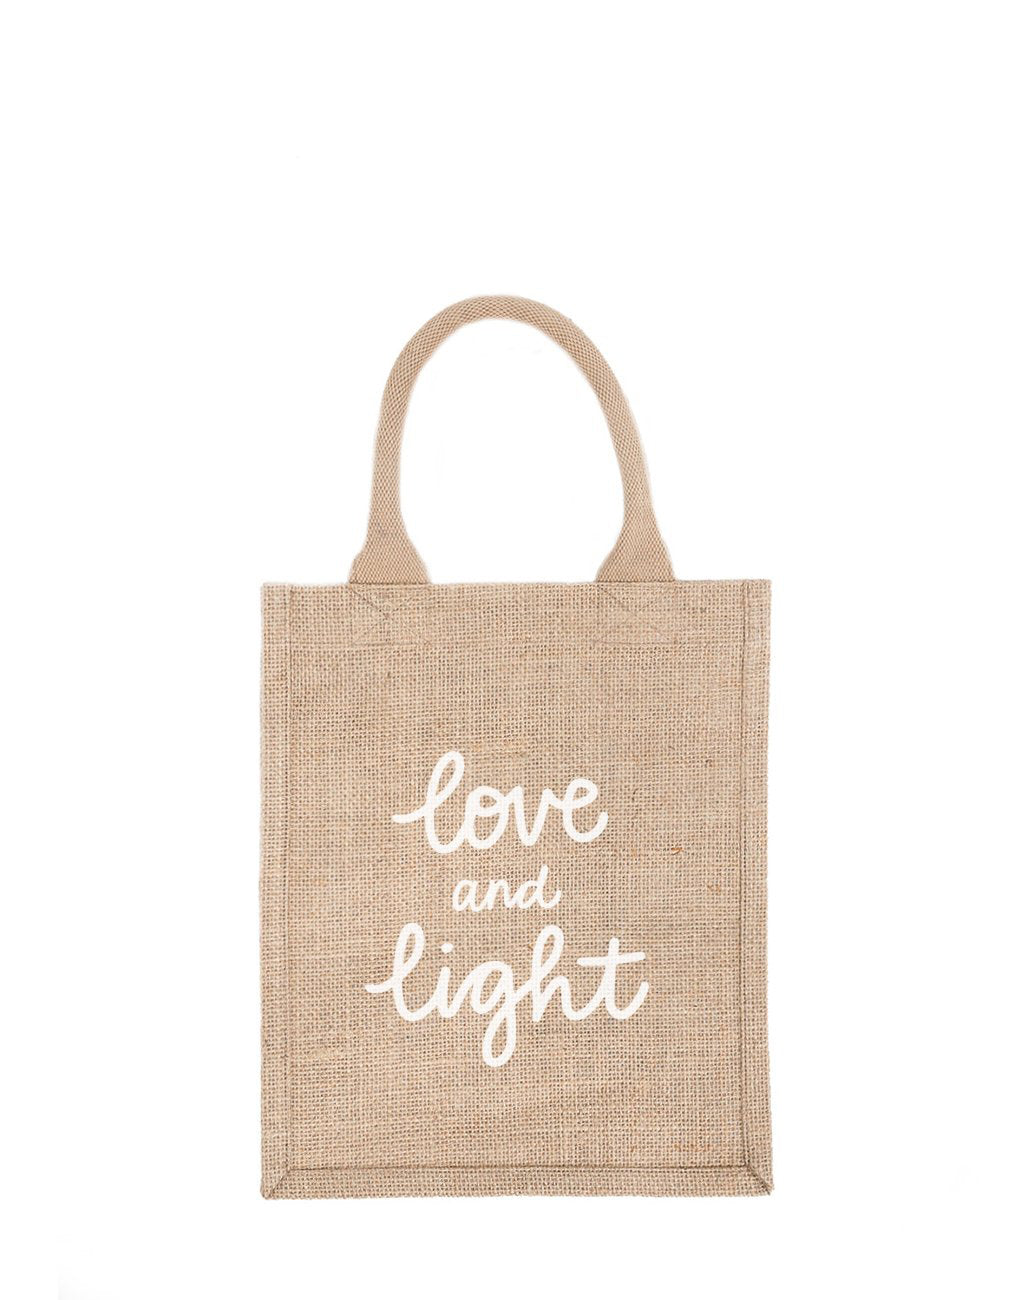 Medium Love And Light Reusable Gift Tote In White Font | The Little Market